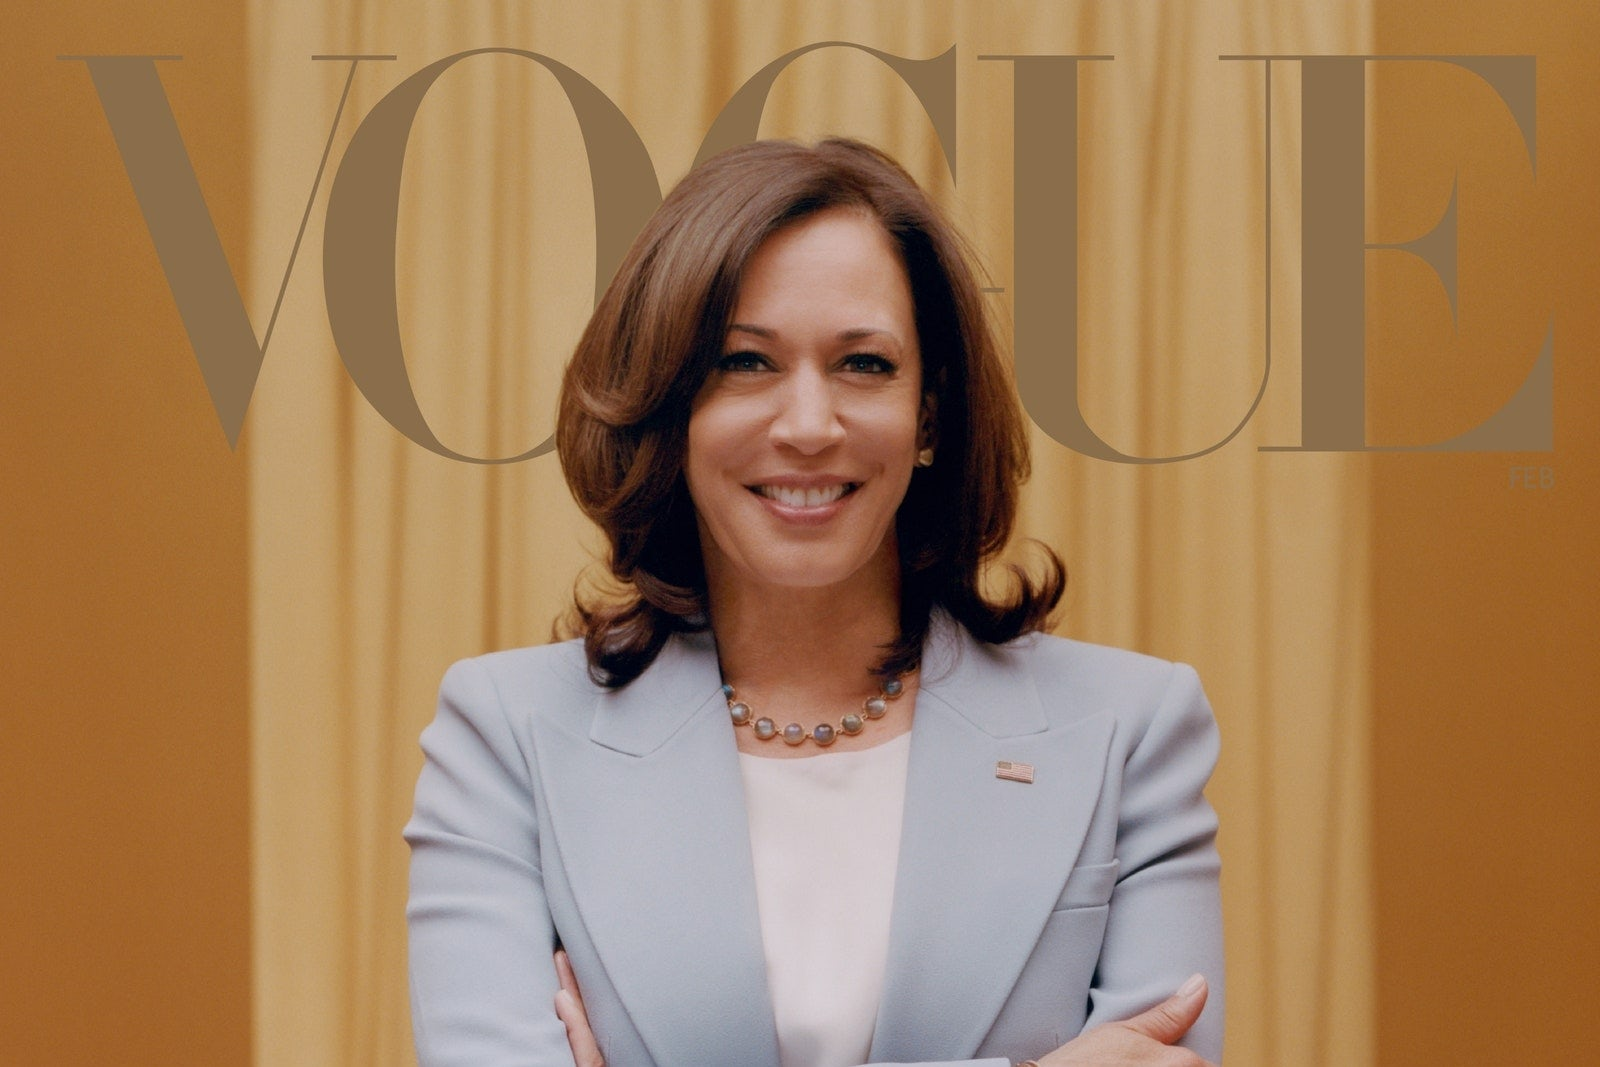 Vice President-Elect Kamala Harris on the cover of Vogue. Tyler Mitchell.